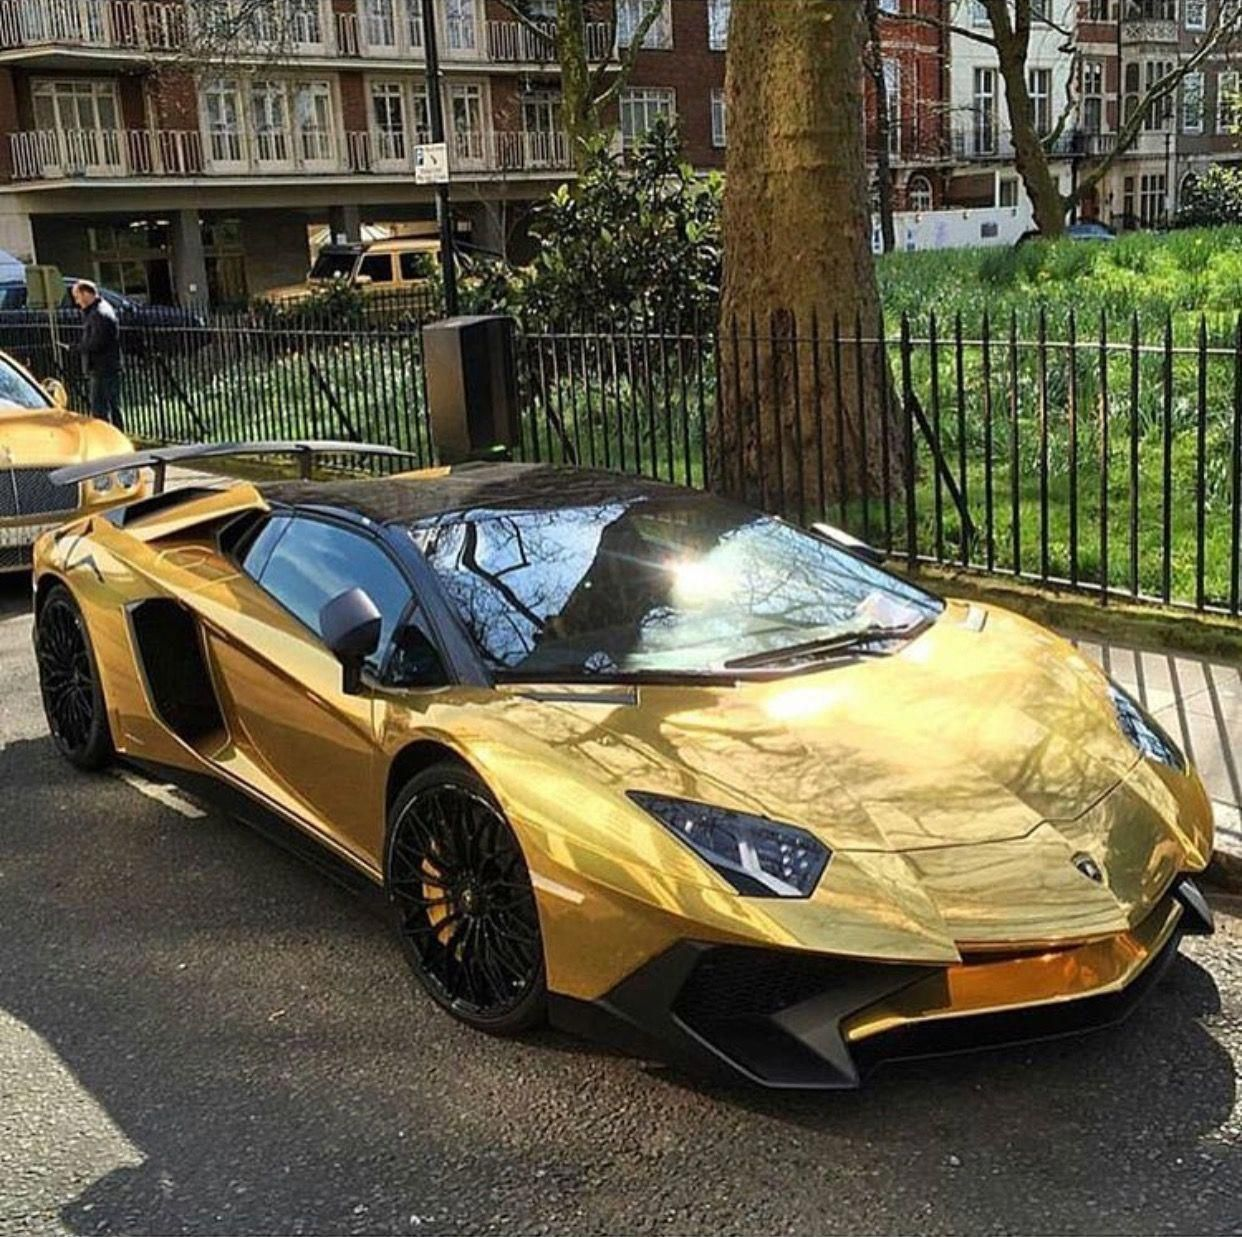 Lamborghini Aventador Super Veloce Roadster Painted In Giallo Orion And Wrapped In Chrome Gold Photo Lamborghini Aventador Sports Cars Luxury Lamborghini Cars